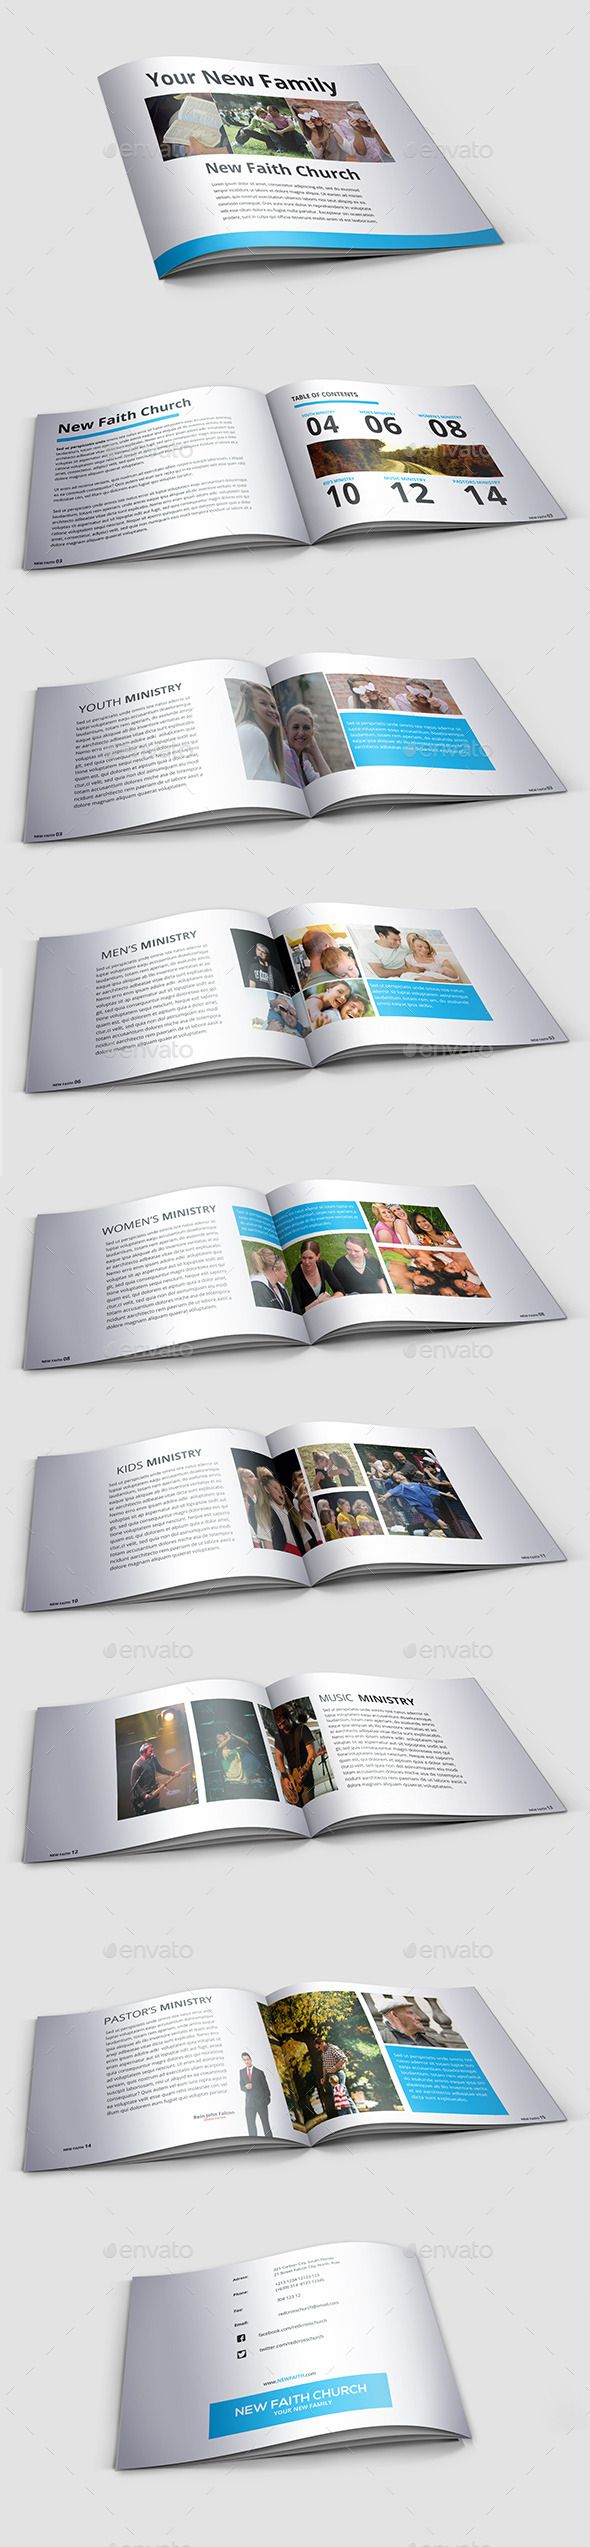 Modern Minimal Church Brochure — InDesign INDD #brochure #clean • Available here → https://graphicriver.net/item/modern-minimal-church-brochure/9576331?ref=pxcr